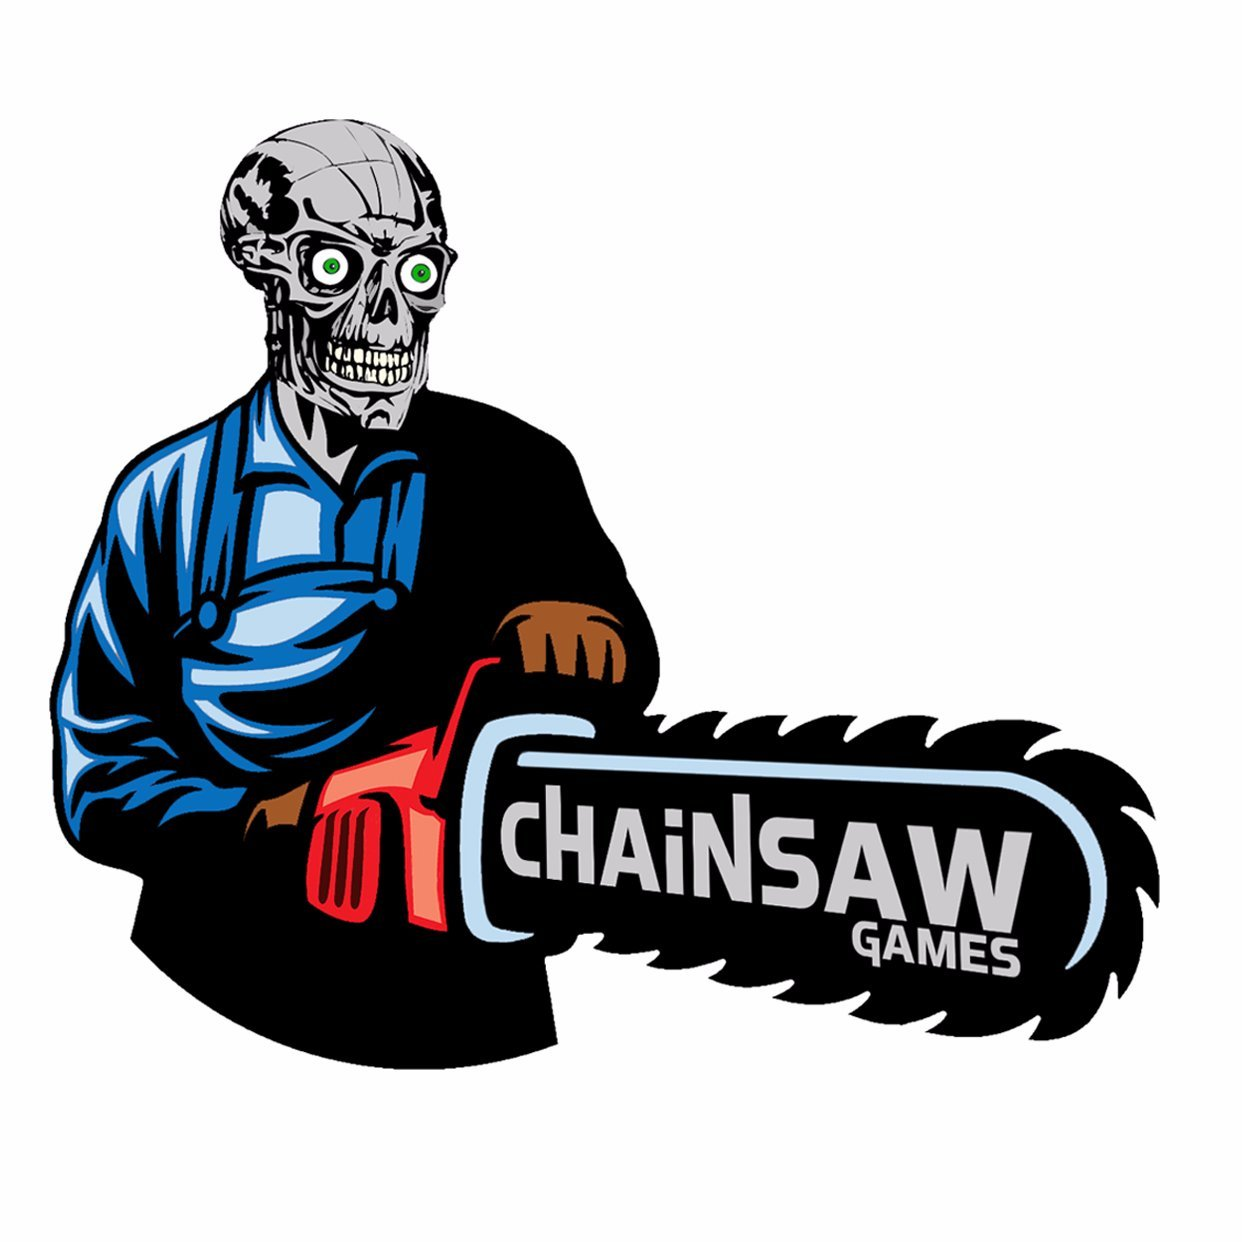 CHAiNSAW Games